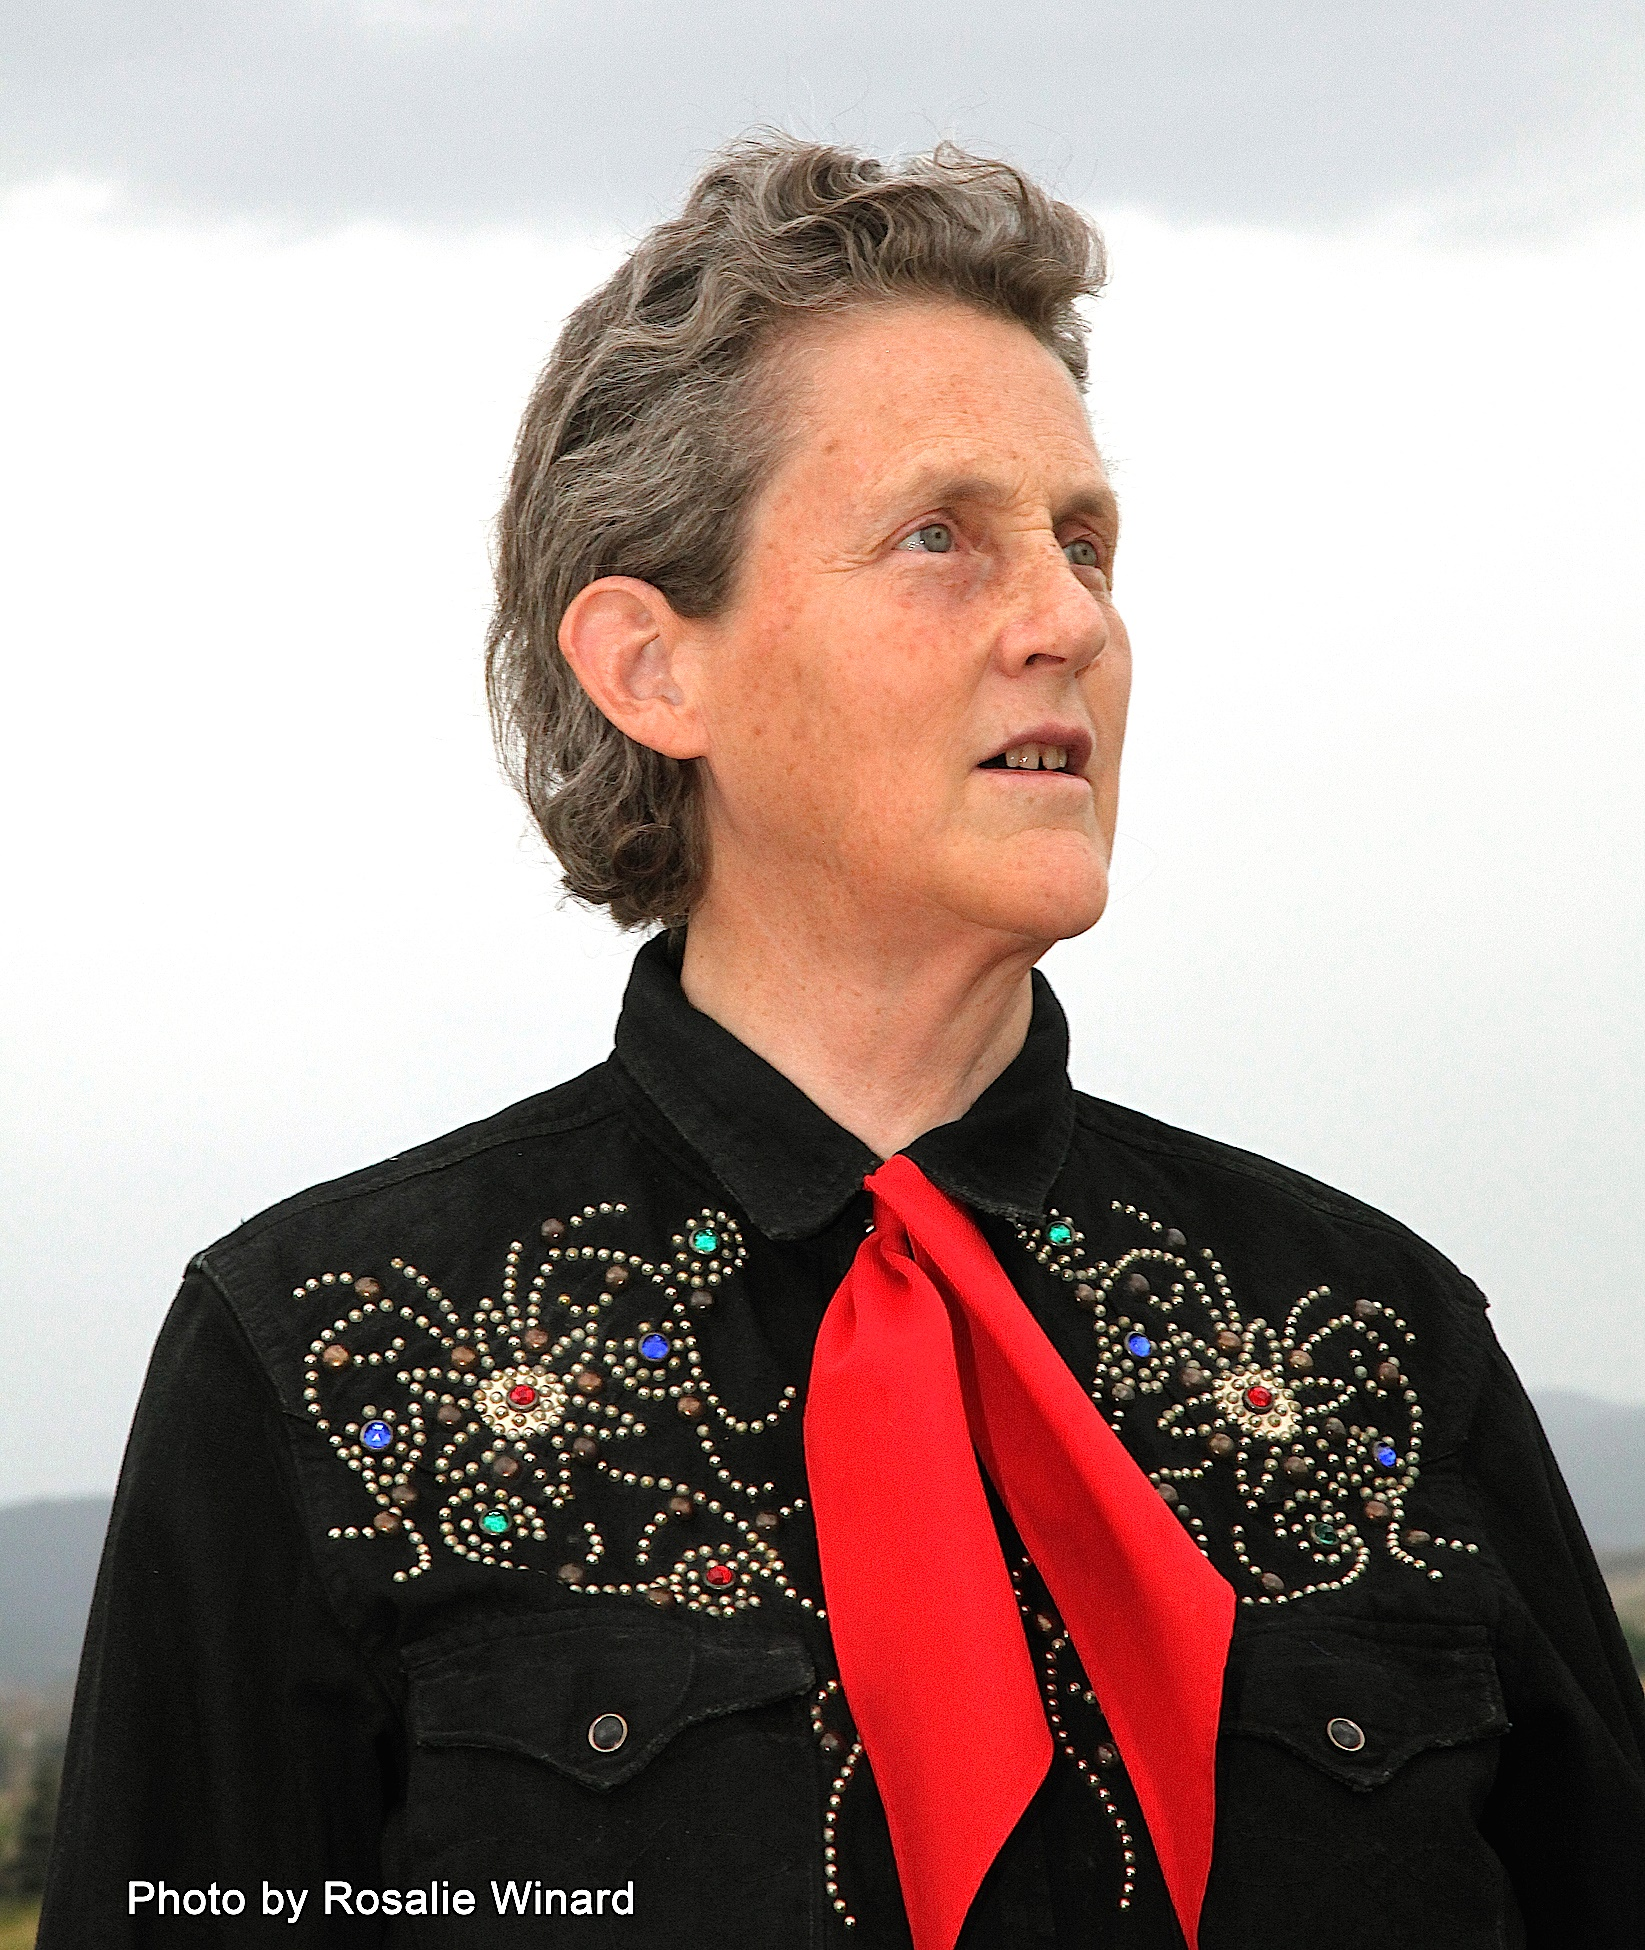 Image of Temple Grandin wearing a black shirt and red tie